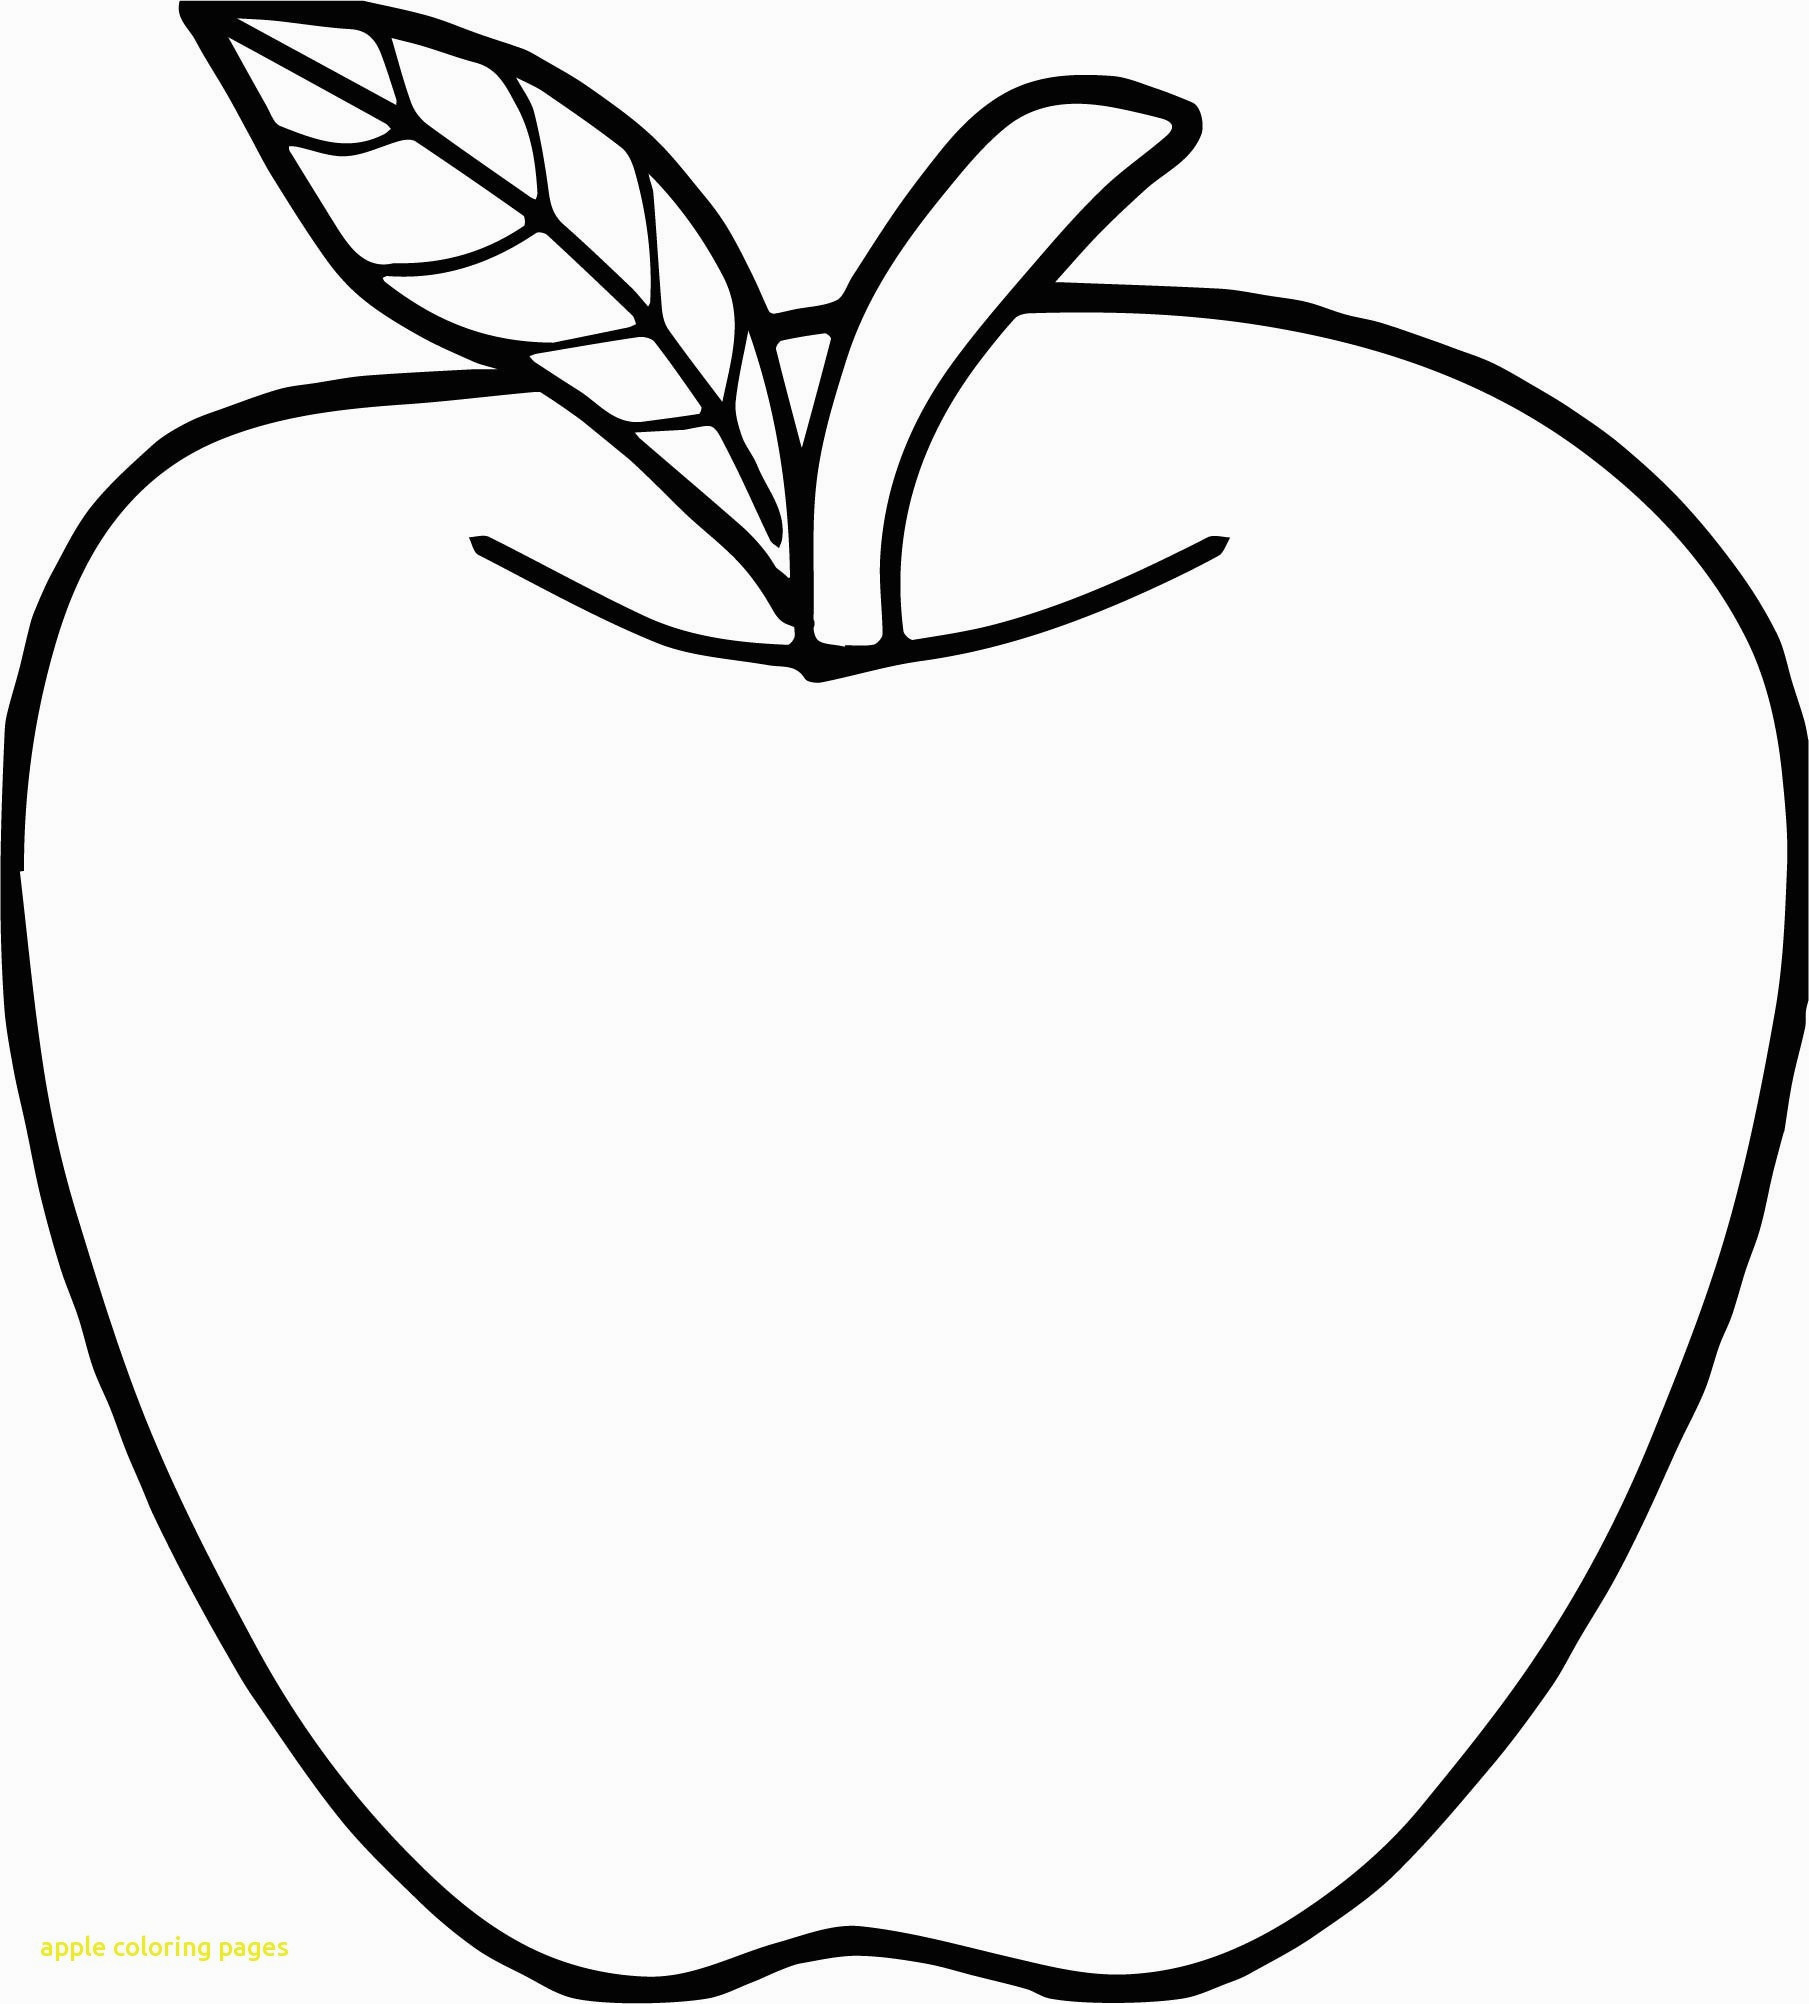 colouring images of apple fruits coloring pages free coloring pages images colouring of apple